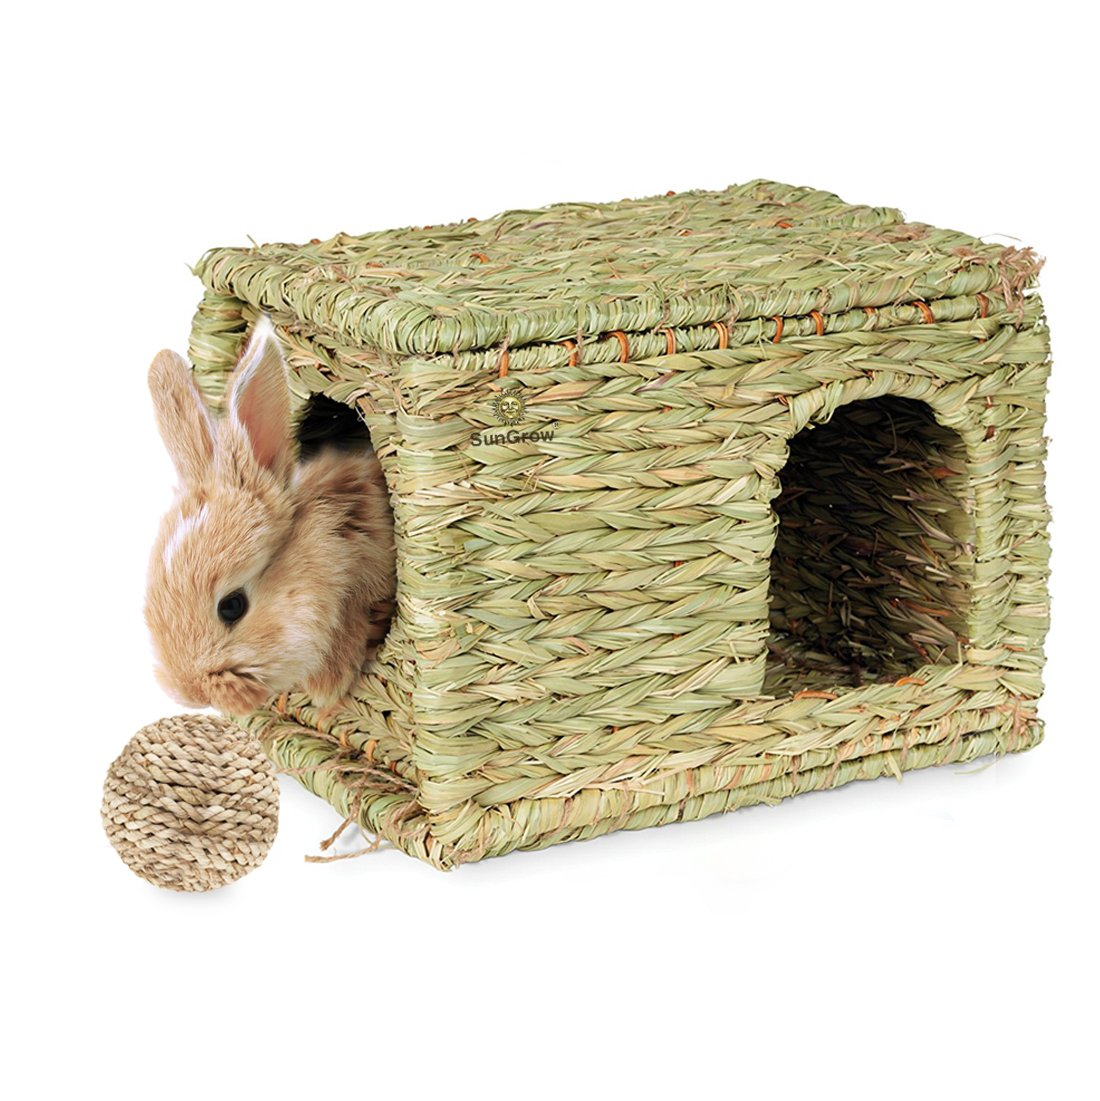 SunGrow Folding Woven Grass House for Rabbits, Guinea Pigs, Bunnies : Provides Comfort, Warmth & Security by Satisfying Natural Instincts: Multi-Utility, Edible, Non-Toxic, Chew Toy for Small Animals by SunGrow (Image #6)